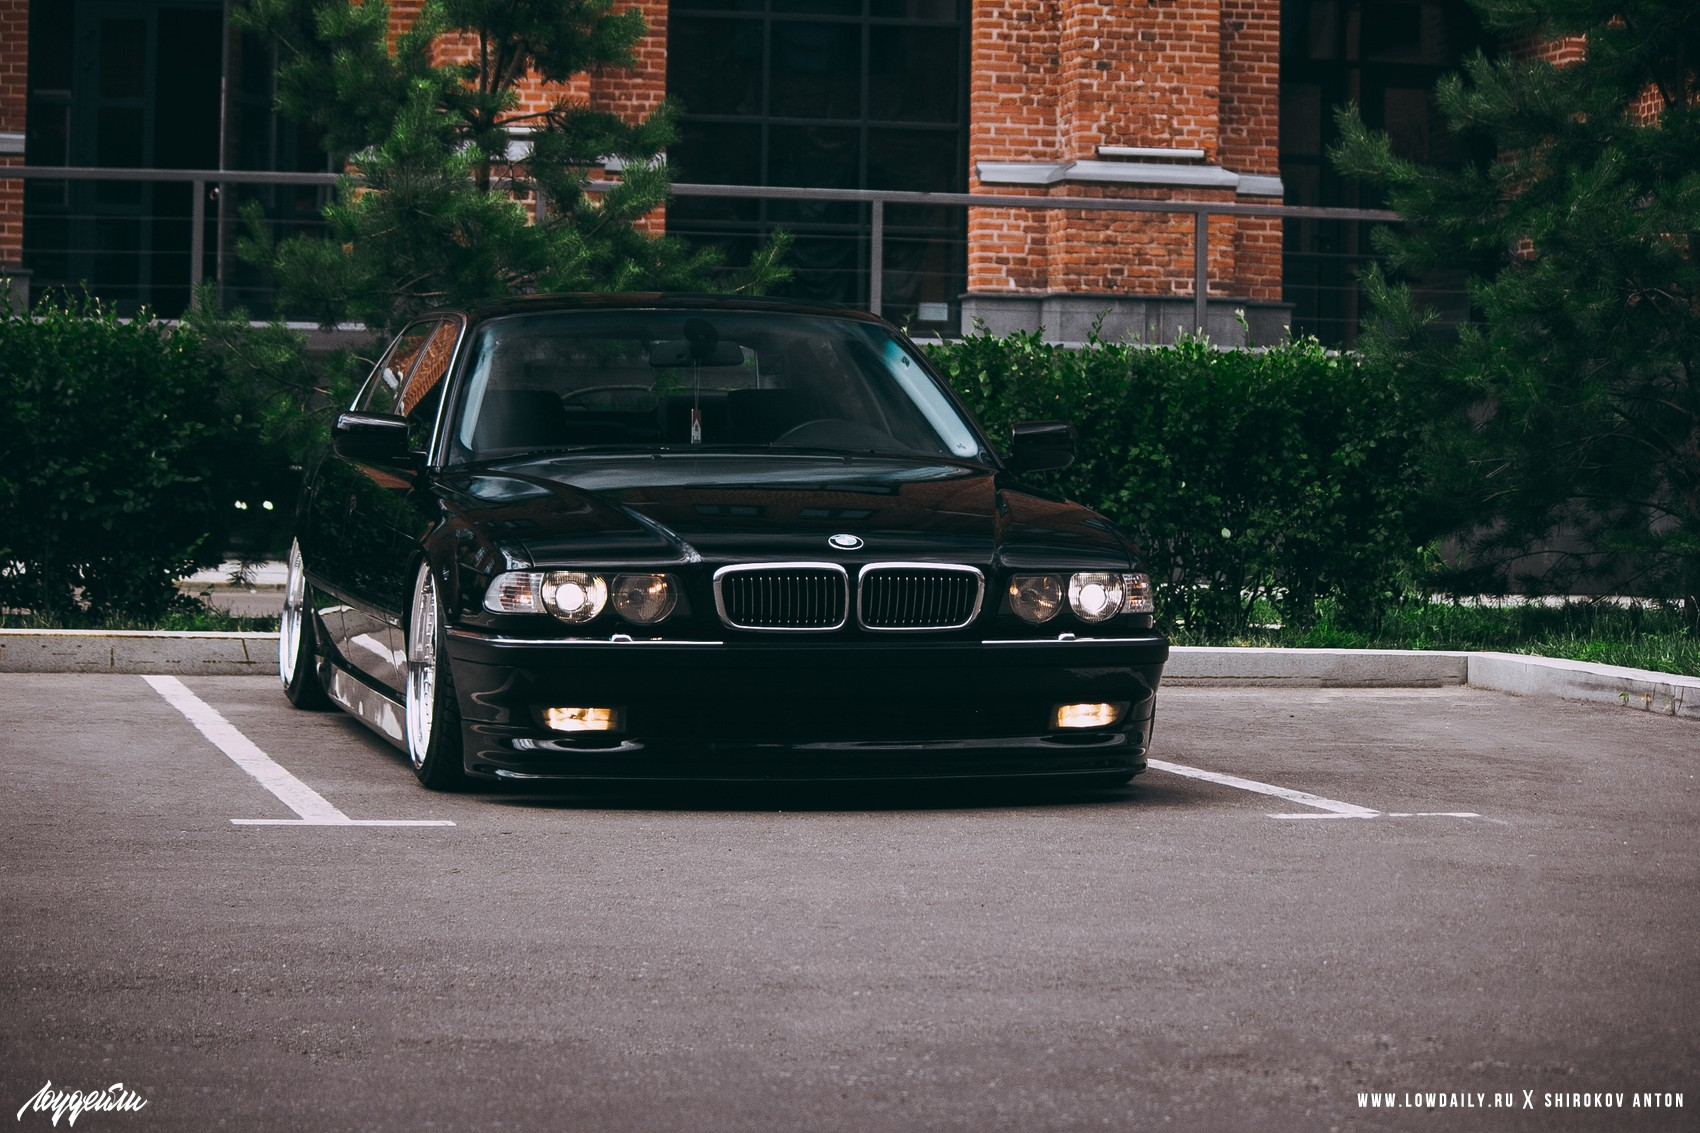 BMW E38 Lowdaily _MG_7022